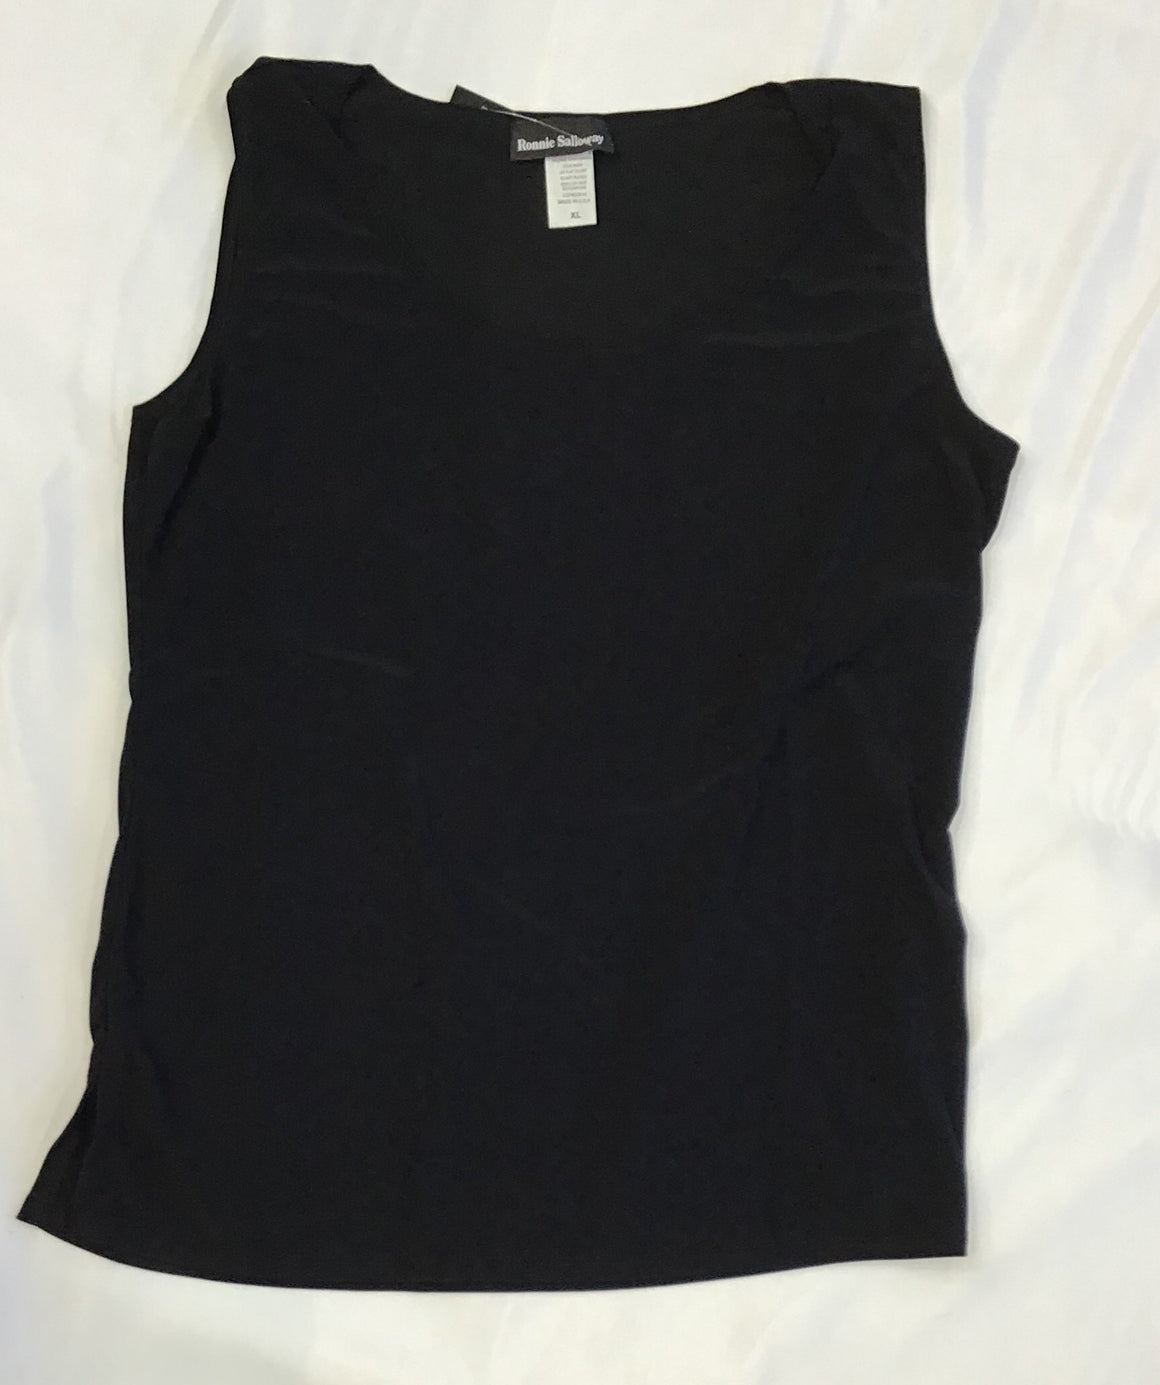 Solid Tank - great layering top